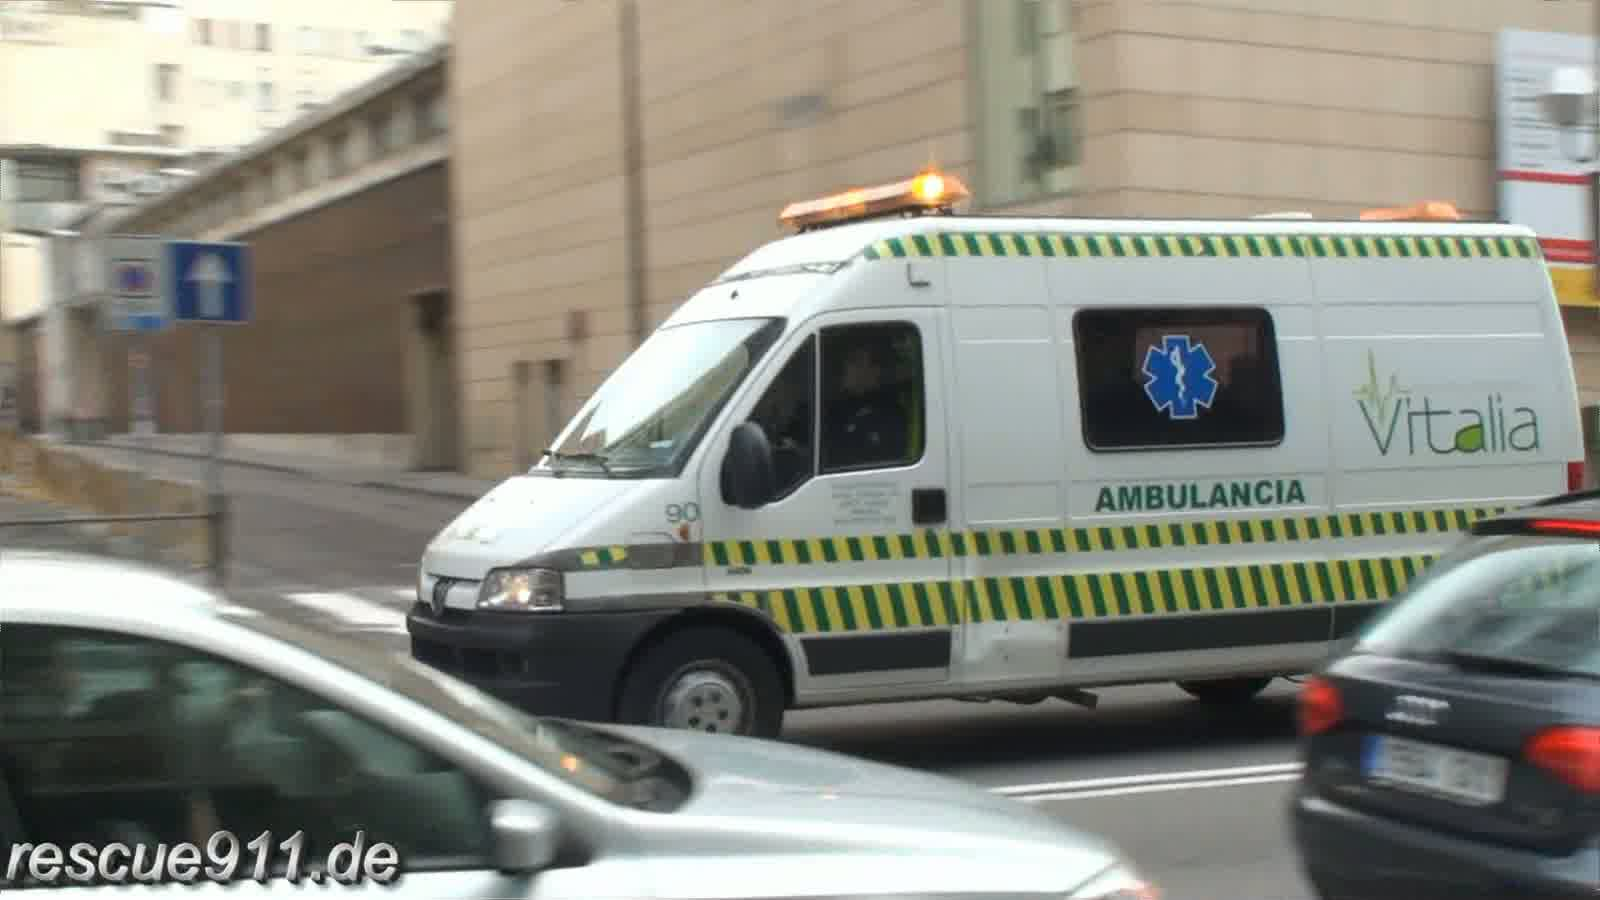 Ambulancia Vitalia Madrid (stream)